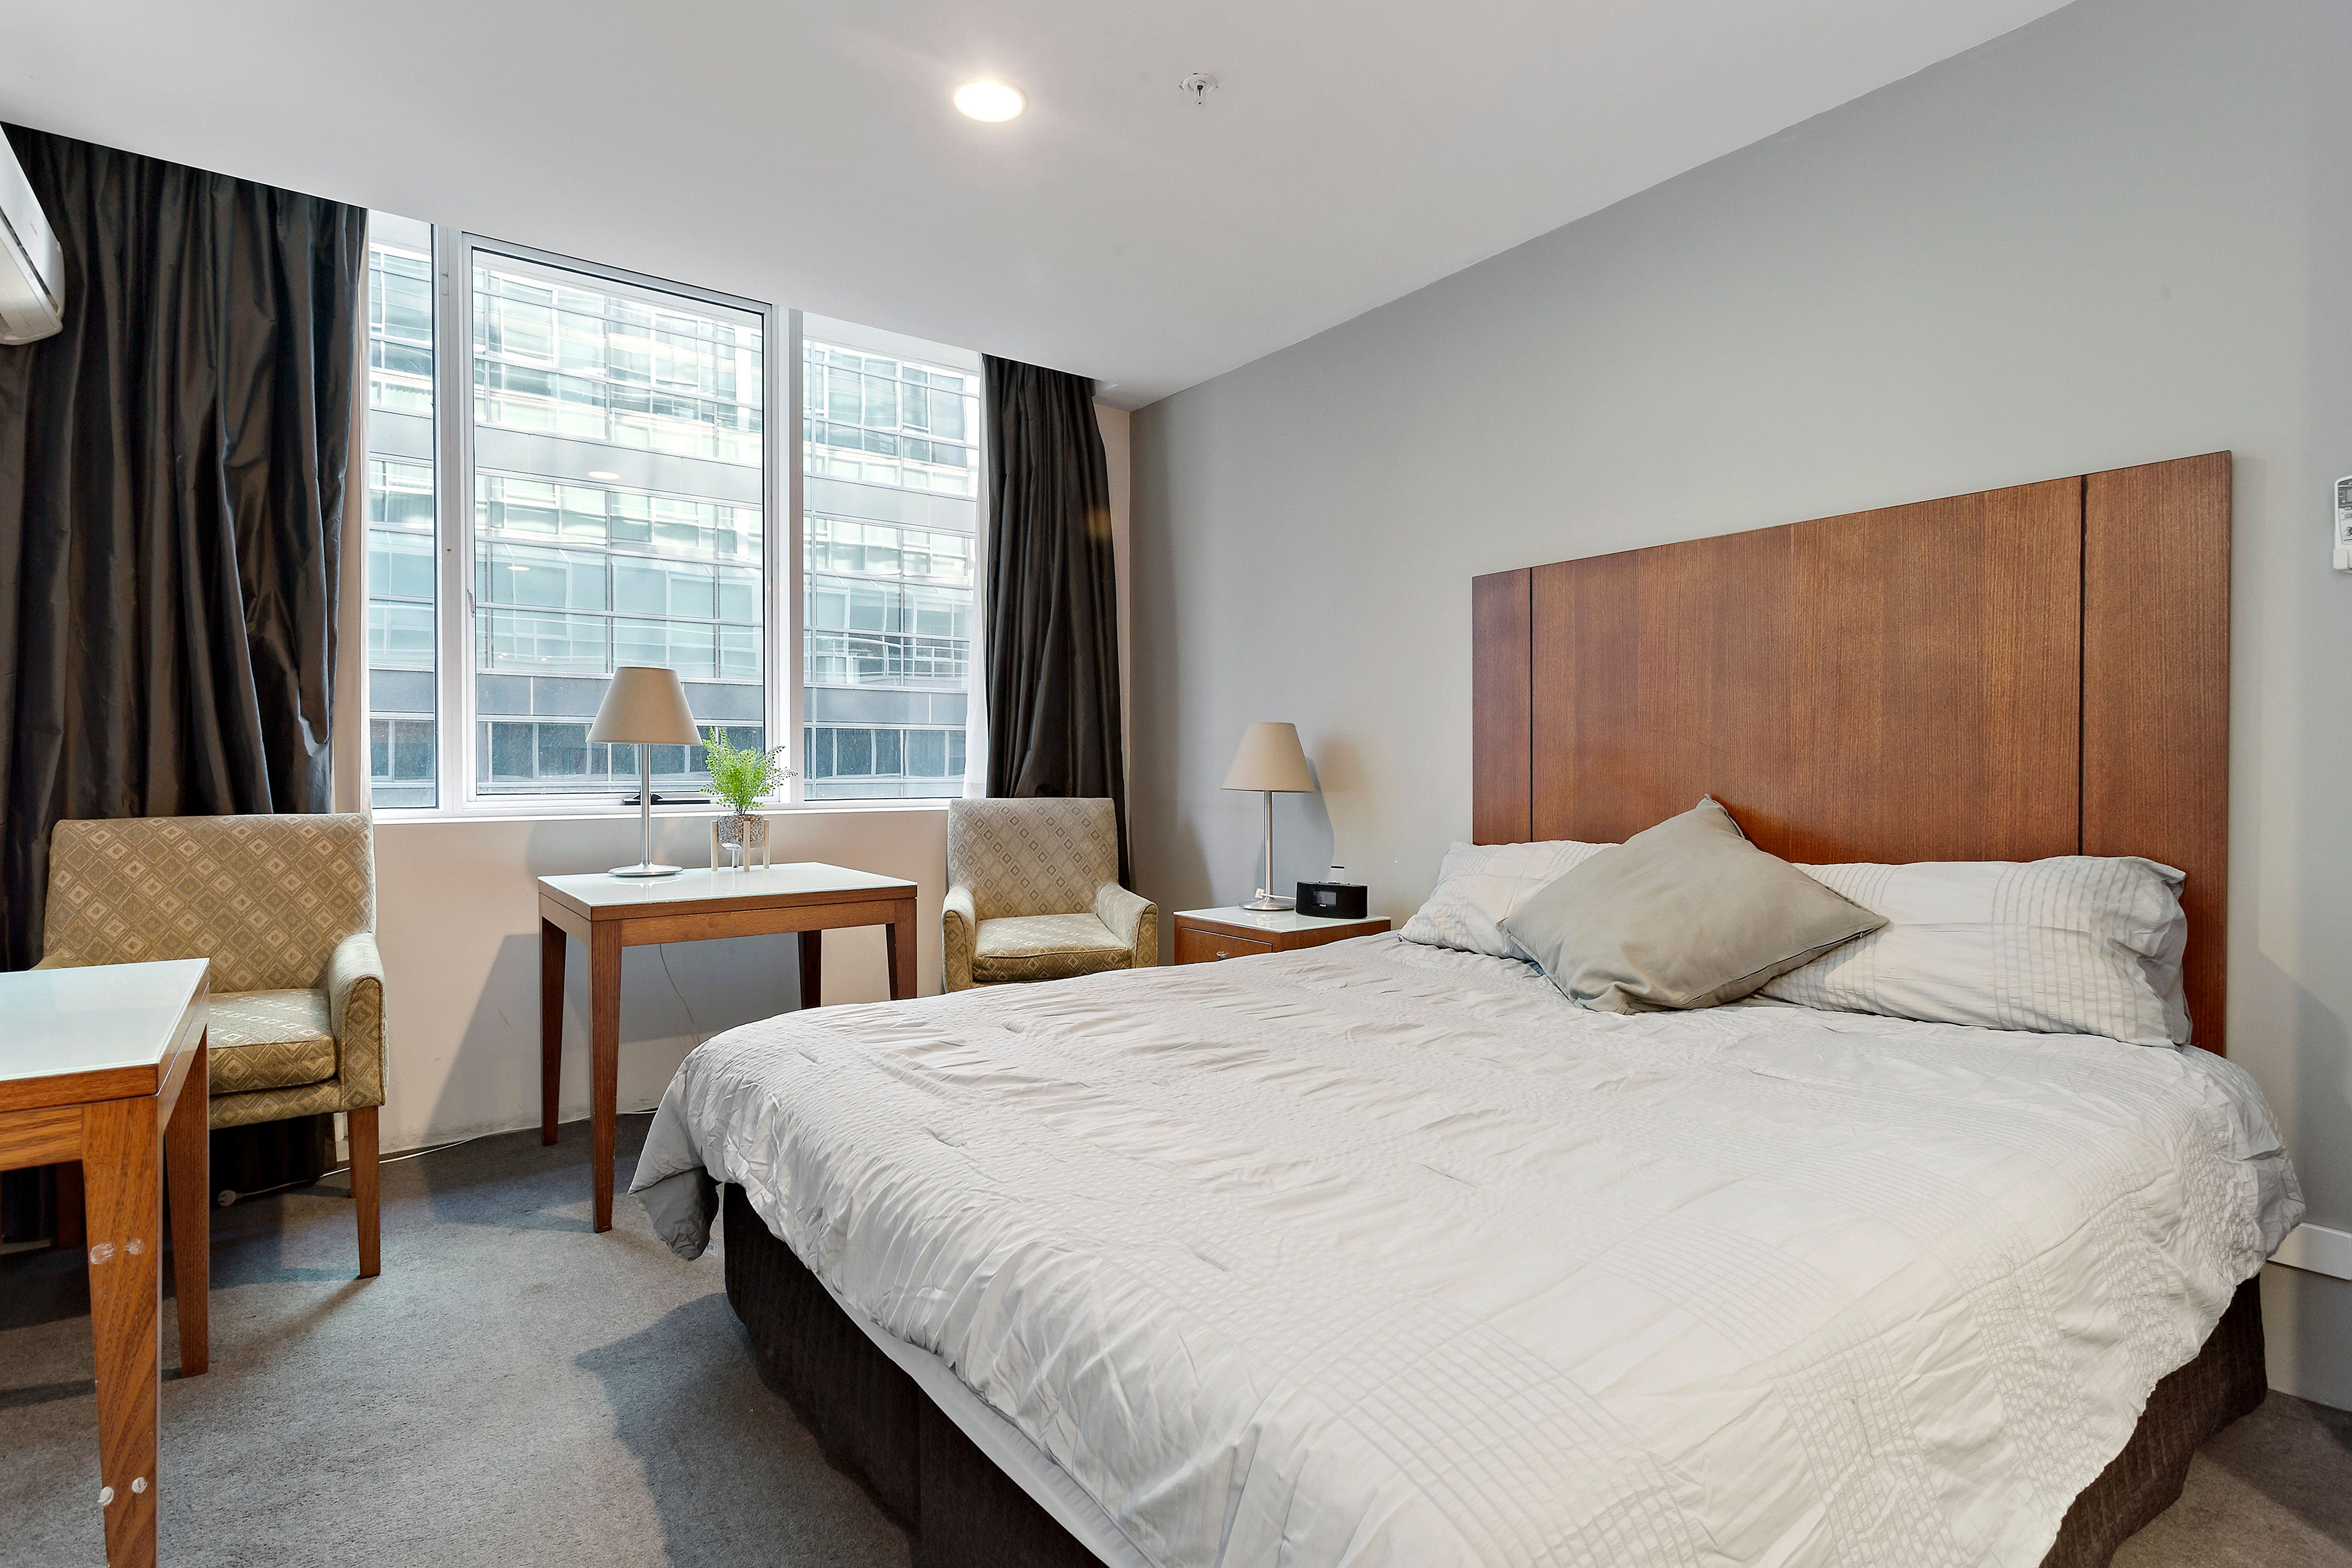 415 604 St Kilda Road Melbourne Vic 3004 Apartment For